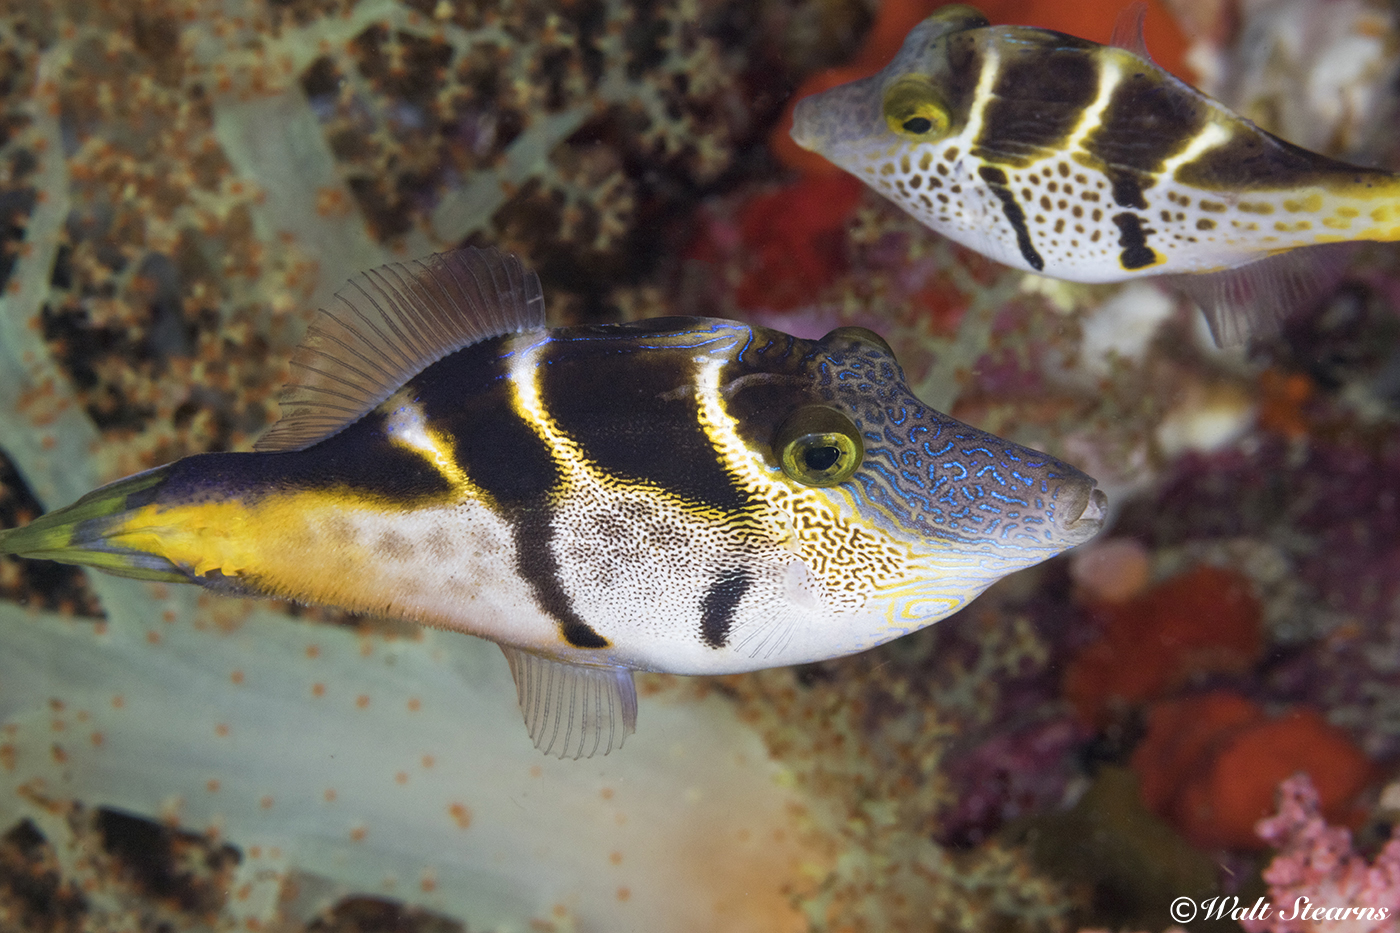 A close relative to triggerfish, the black saddle mimic filefish used deception as a defense. Its body shape and coloration mimic the appearance of the Valentini Puffer, which is highly toxic. Look close and you may notice that the filefish has two dorsal